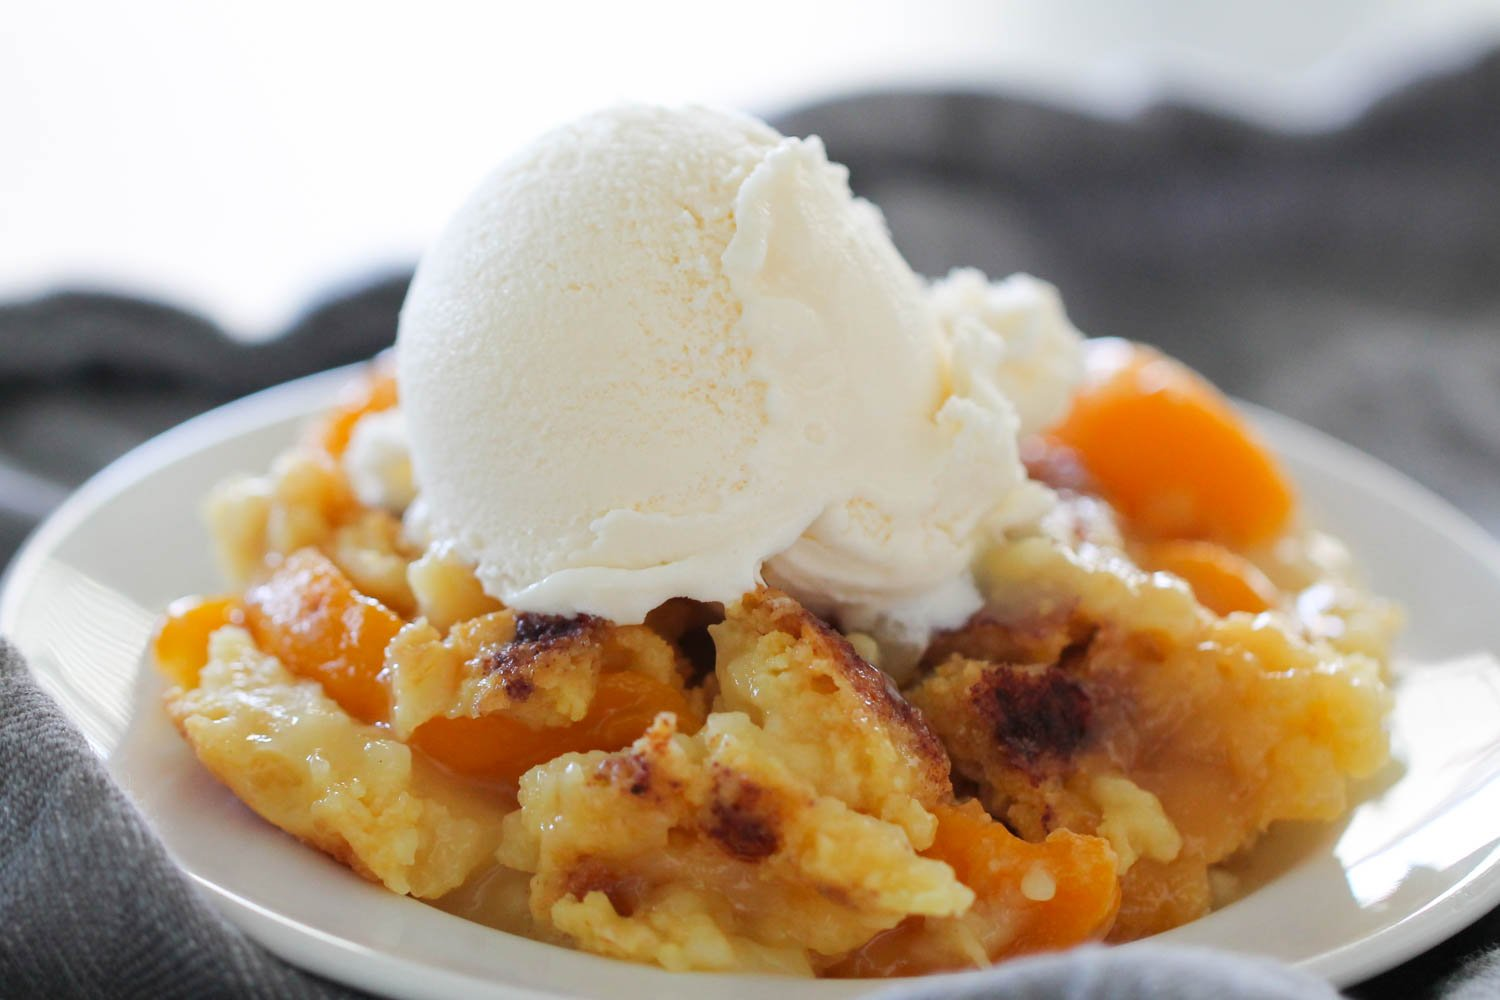 Peach Cobbler Dump Cake topped with ice cream on white plate